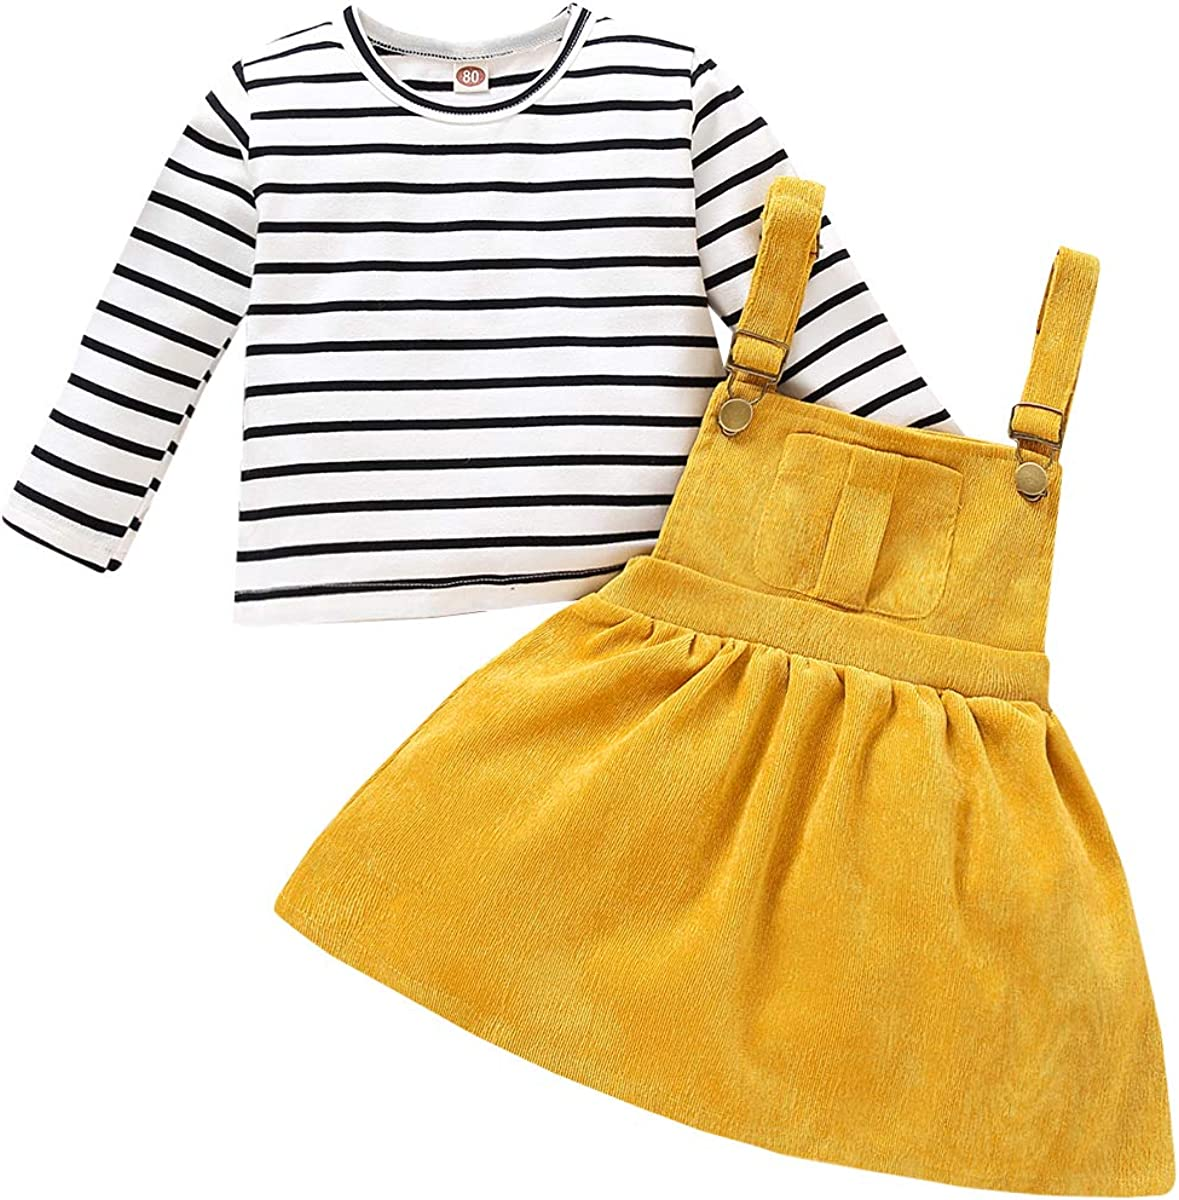 Toddler Baby Girl Clothes Overall Outfits Sets Infant Long Sleeve Stripe Top Strap Skirt Fall Winter Clothes for Baby Girl